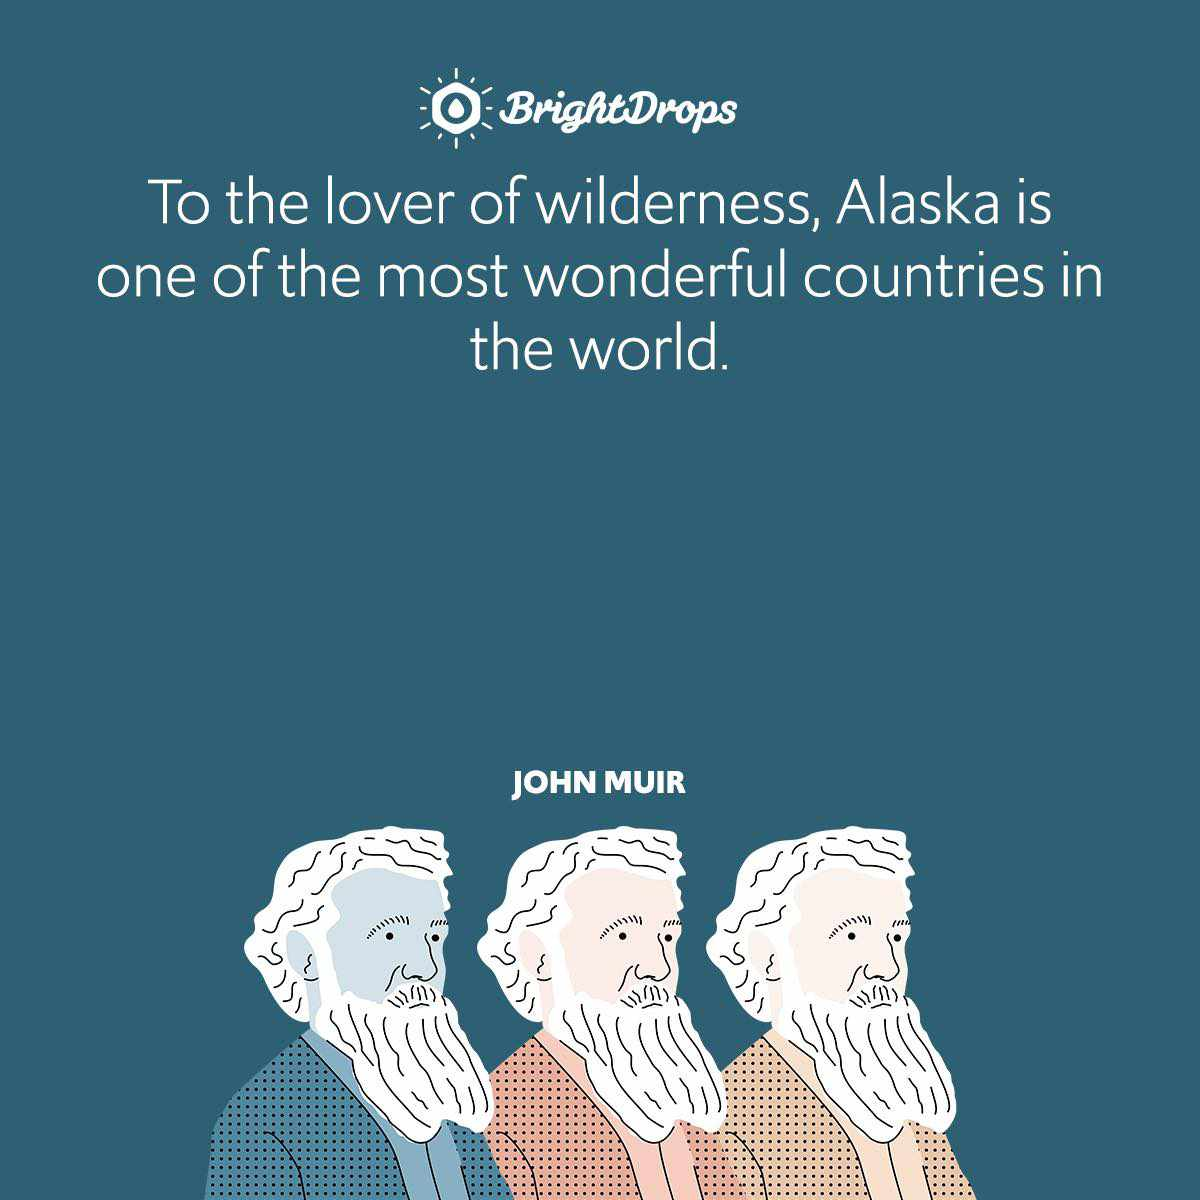 To the lover of wilderness, Alaska is one of the most wonderful countries in the world.